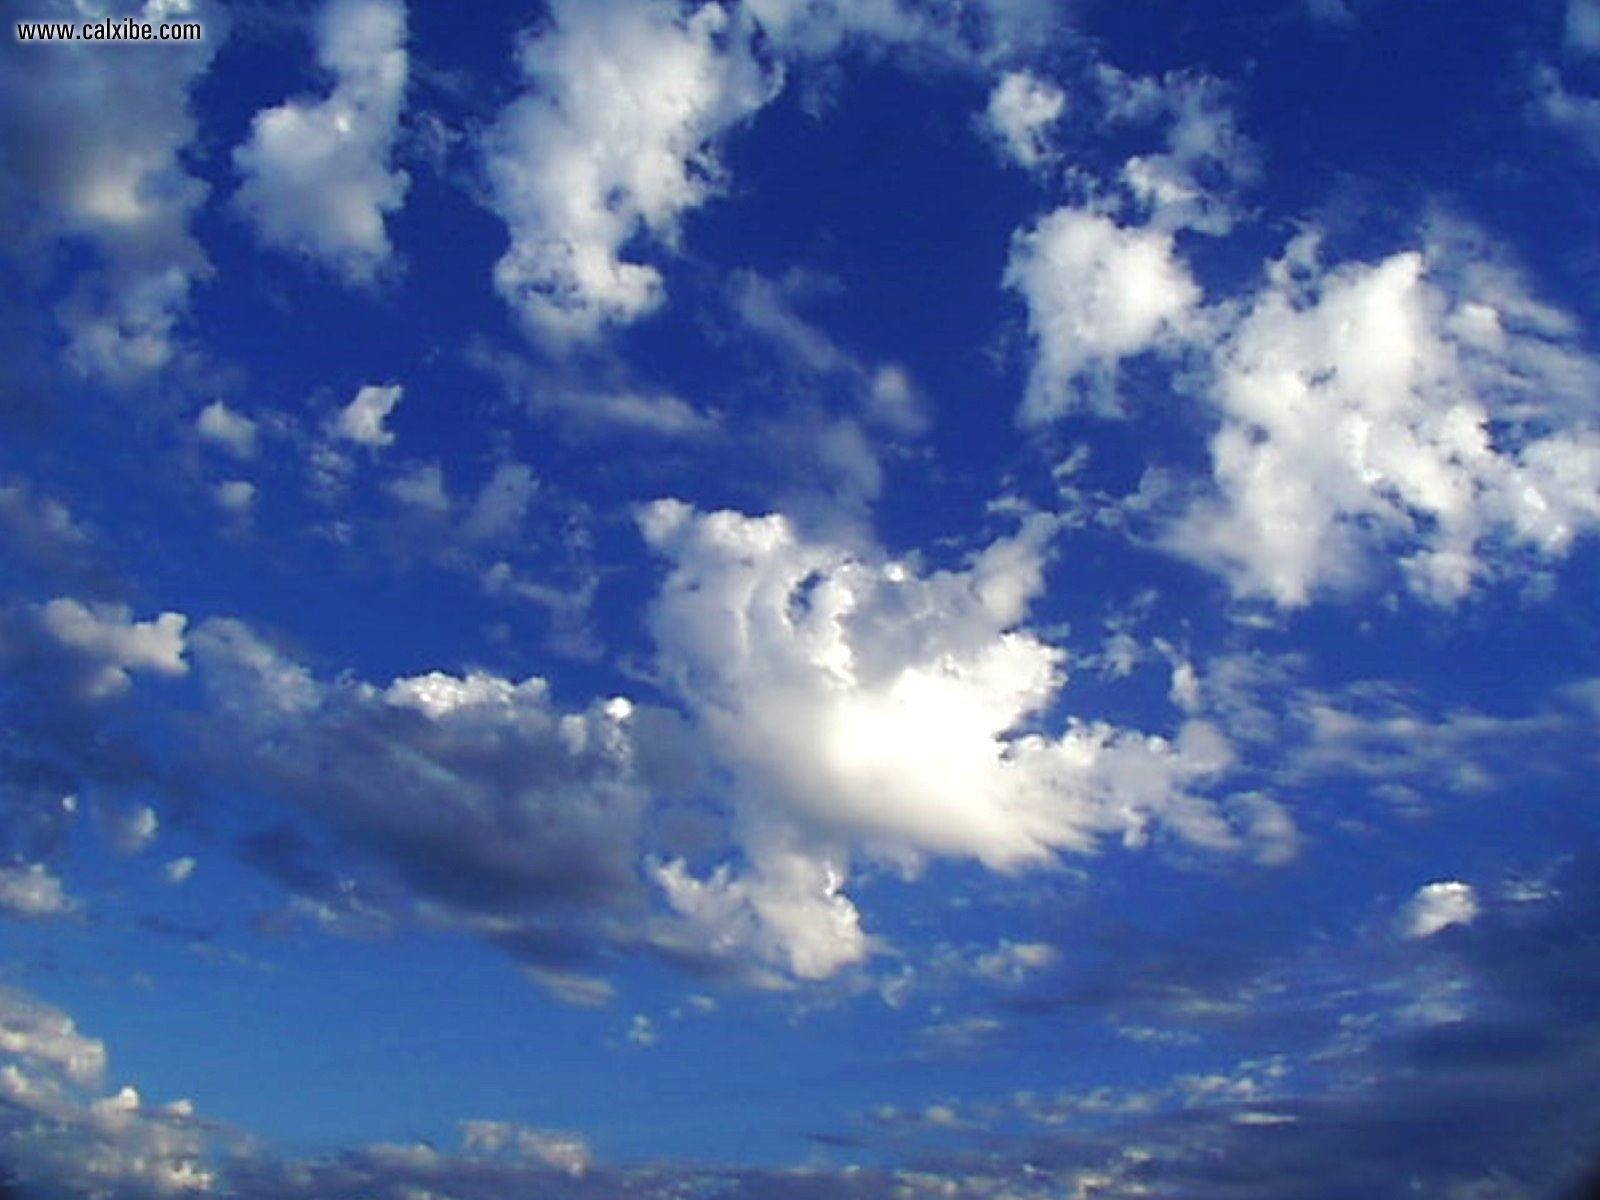 Nature: Blue Sky and Clouds, picture nr. 18635